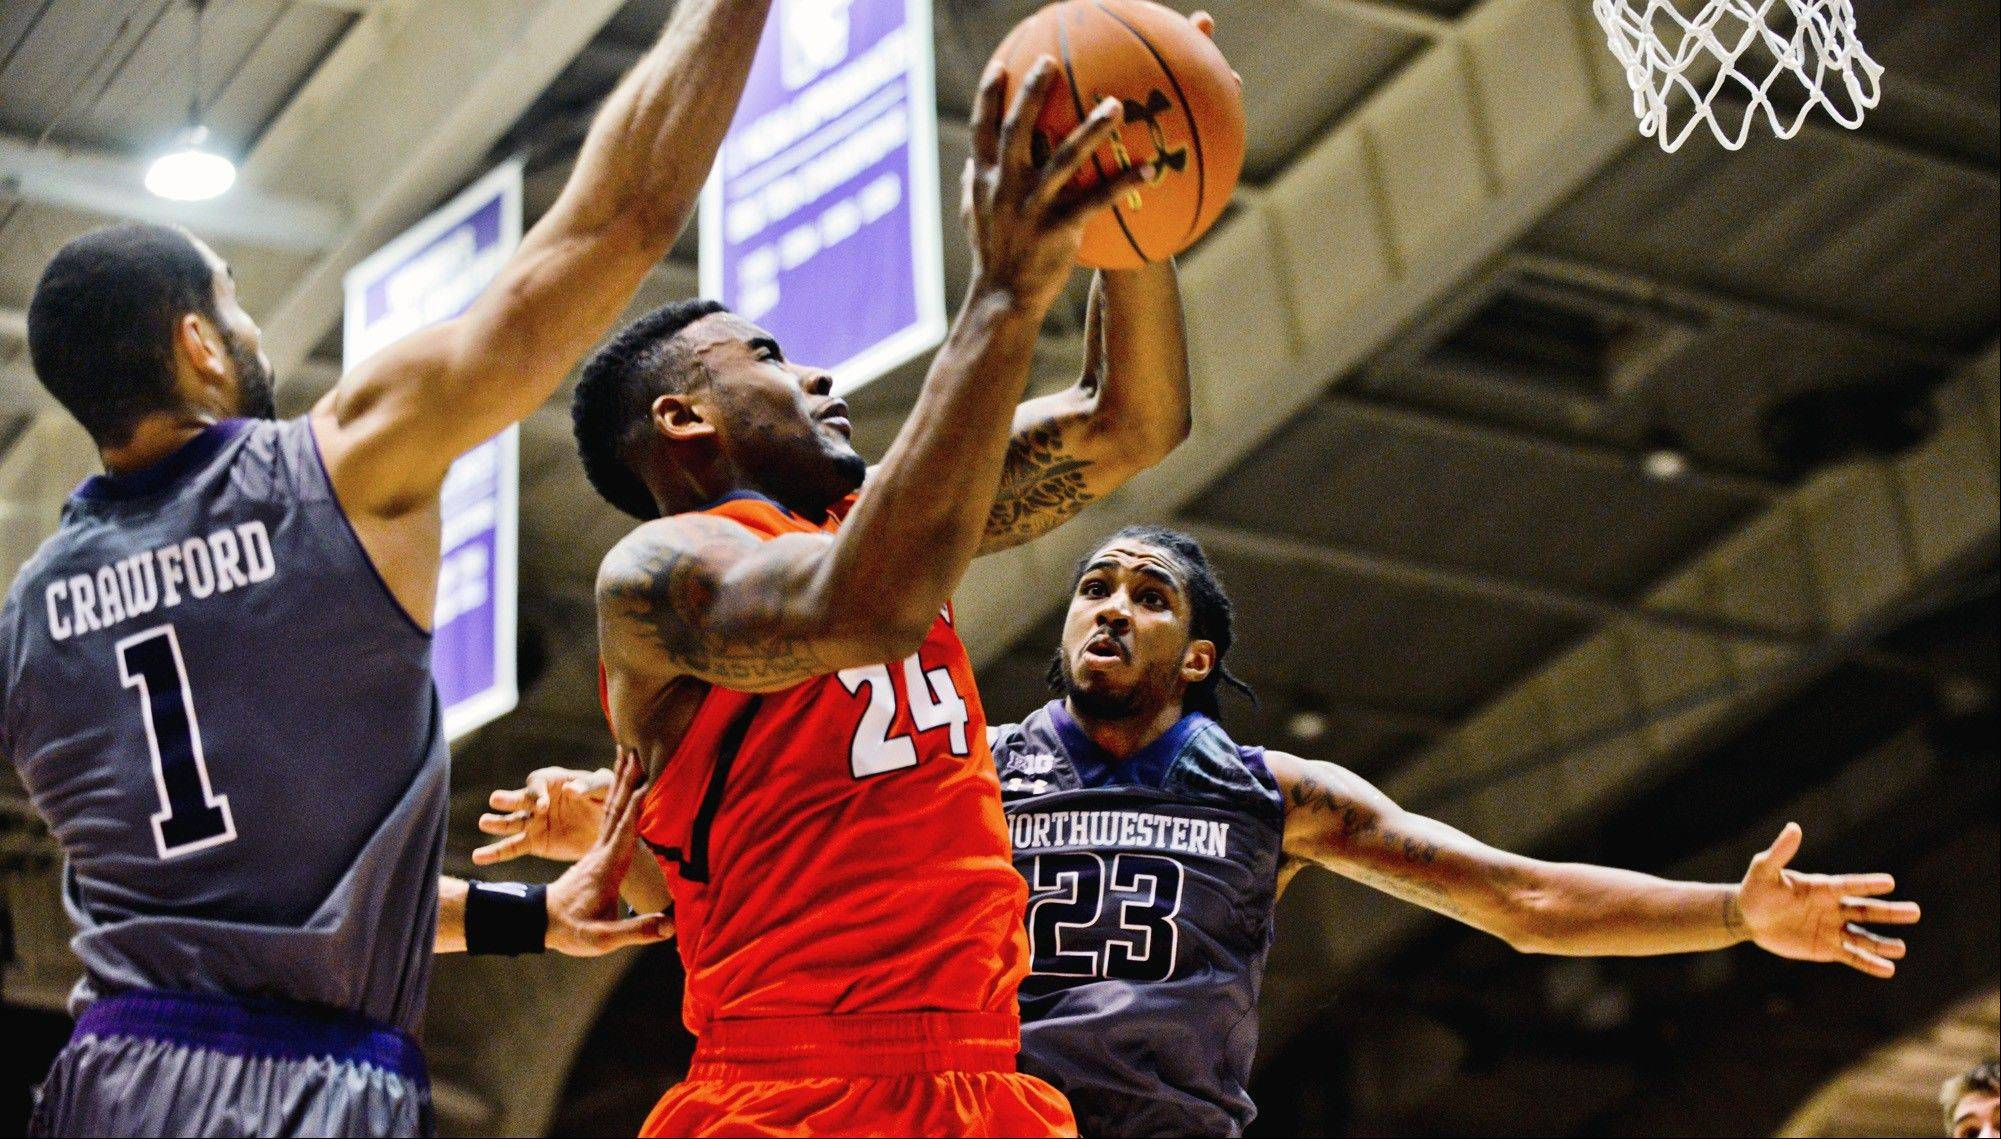 Illinois guard Rayvonte Rice (24) shoots between Northwestern's Drew Crawford (1) and guard JerShon Cobb (23) during the second half of an NCAA college basketball game in Evanston, Ill., on Sunday, Jan. 12, 2014. Northwestern won 49-43. (AP Photo/Matt Marton)